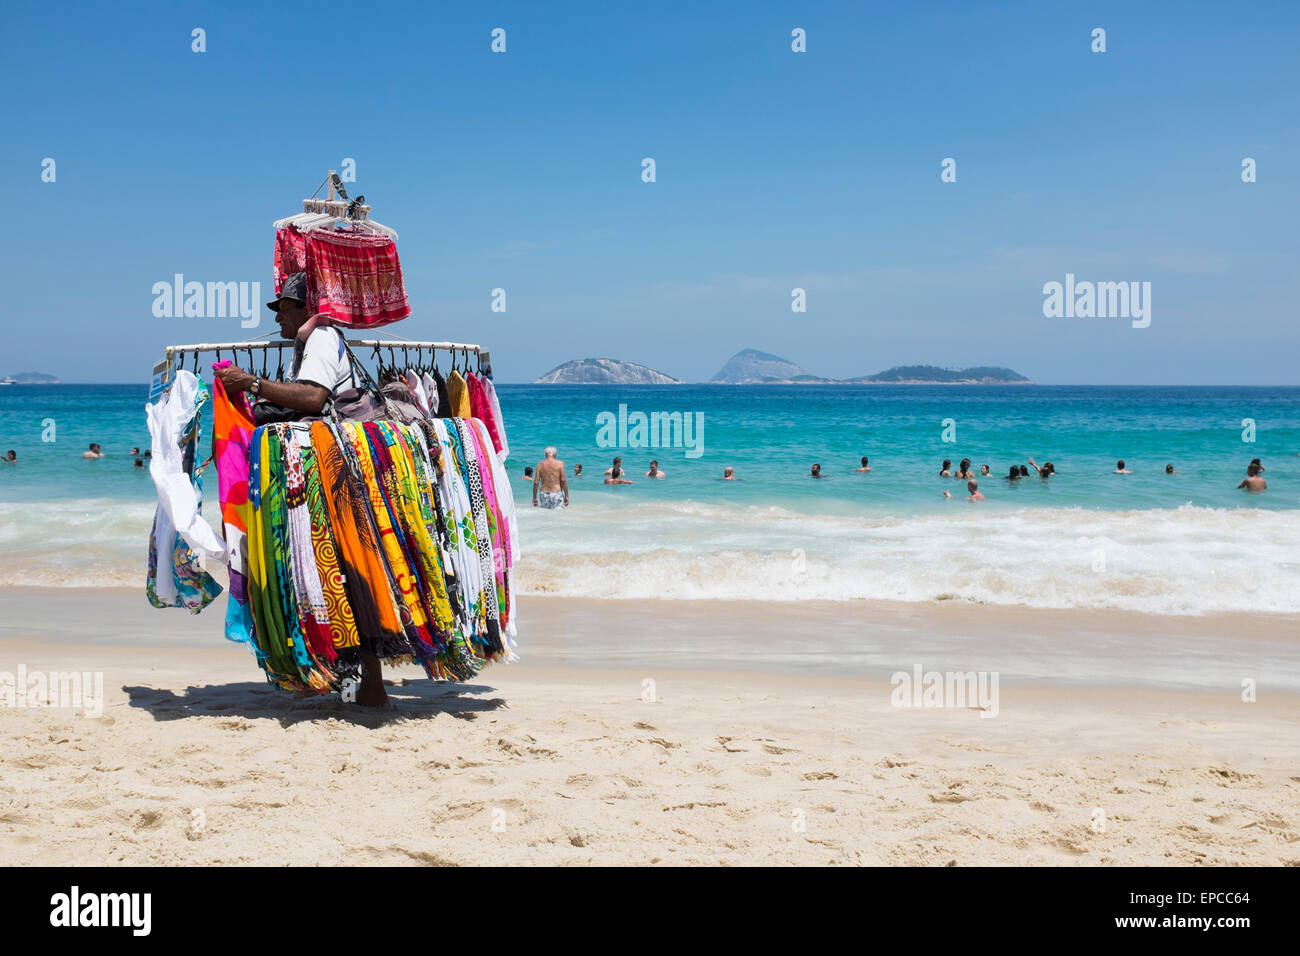 RIO DE JANEIRO, BRAZIL - MARCH 15, 2015: A beach vendor selling brightly colored dresses carries merchandise on - Stock Image